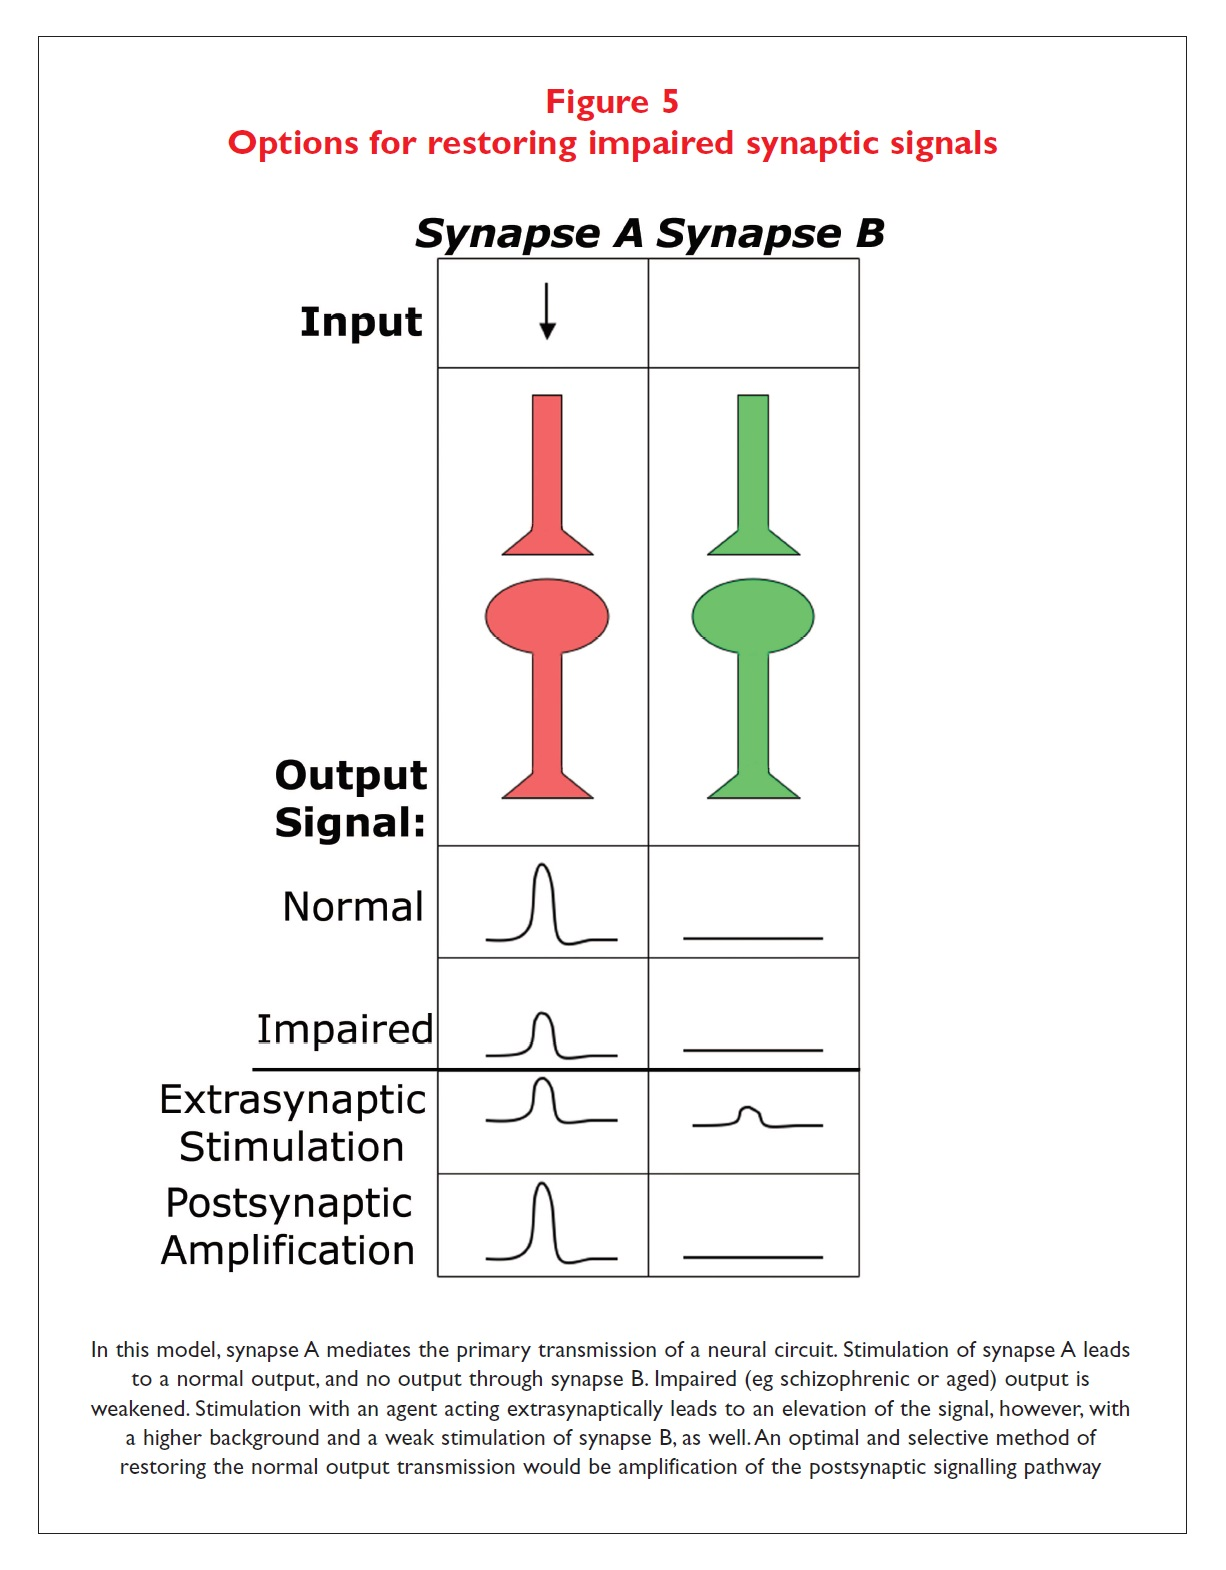 Figure 5 Options for restoring impaired synaptic signals